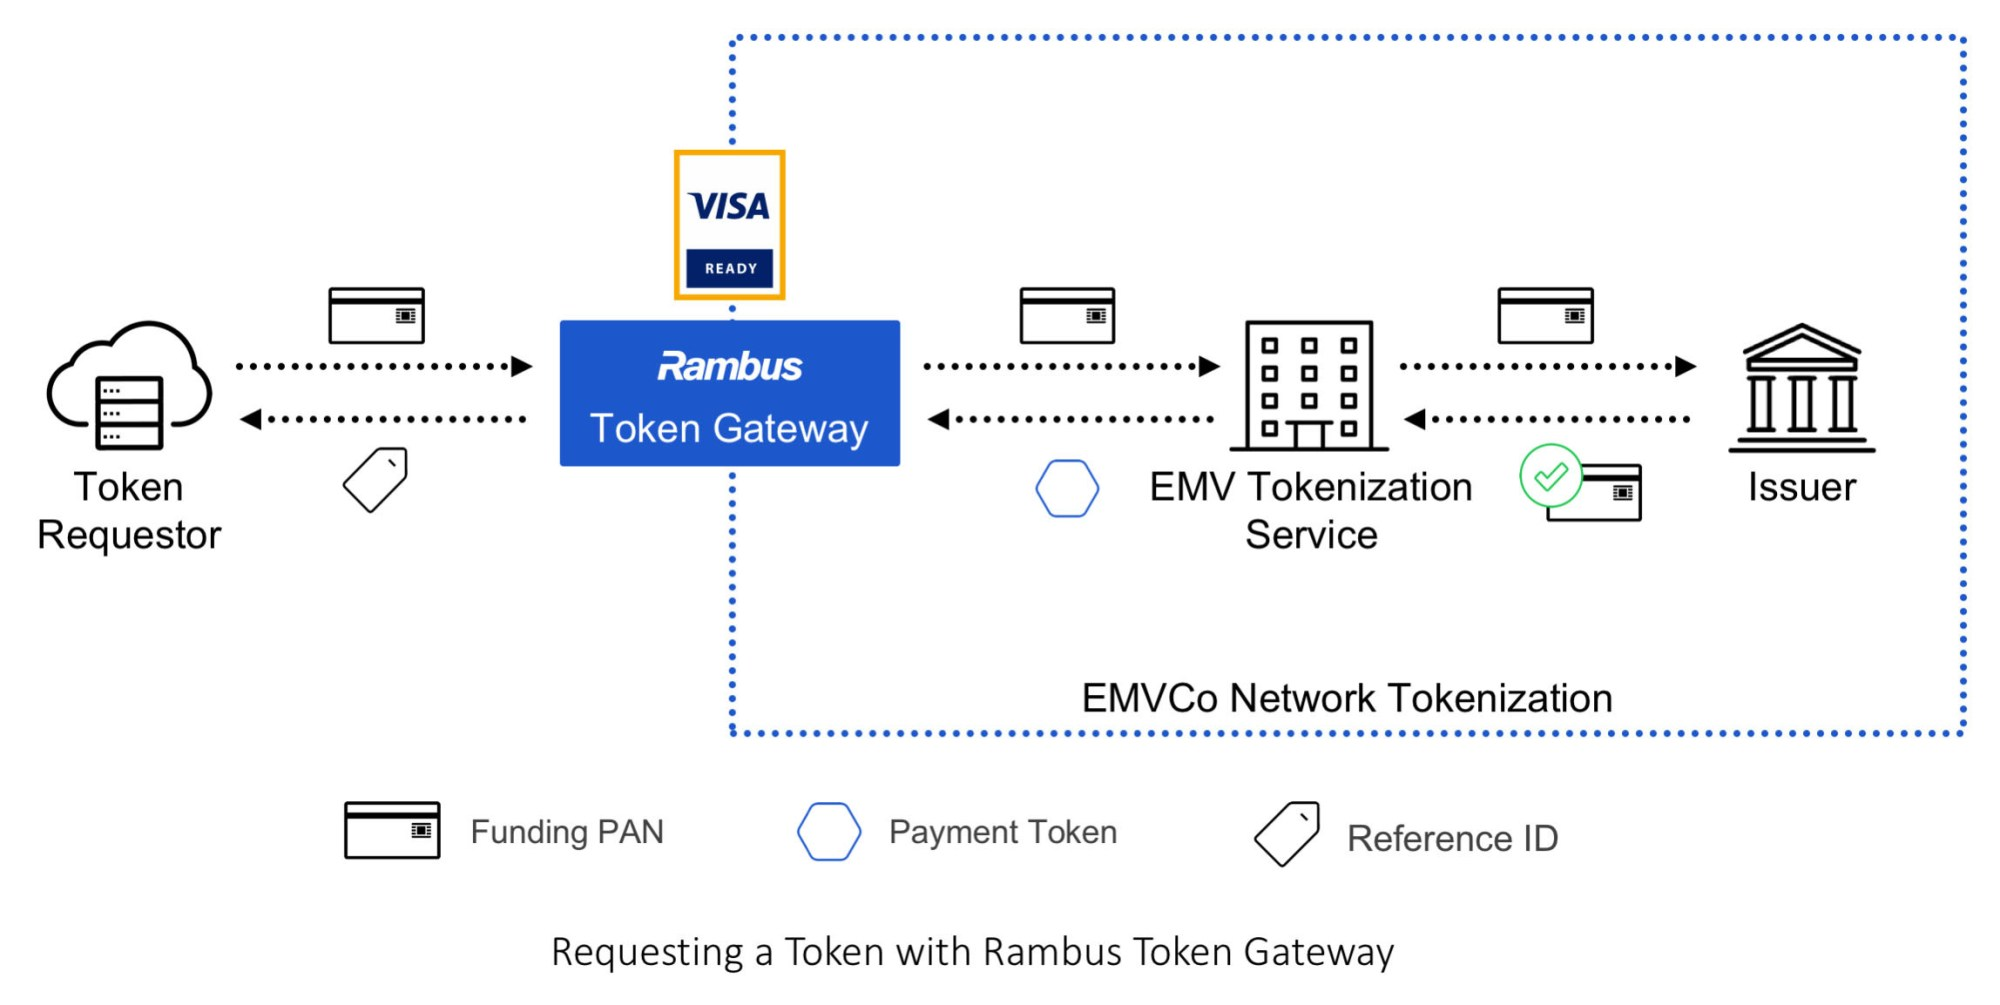 hight resolution of rambus token gateway for e commerce certified visa ready business wire